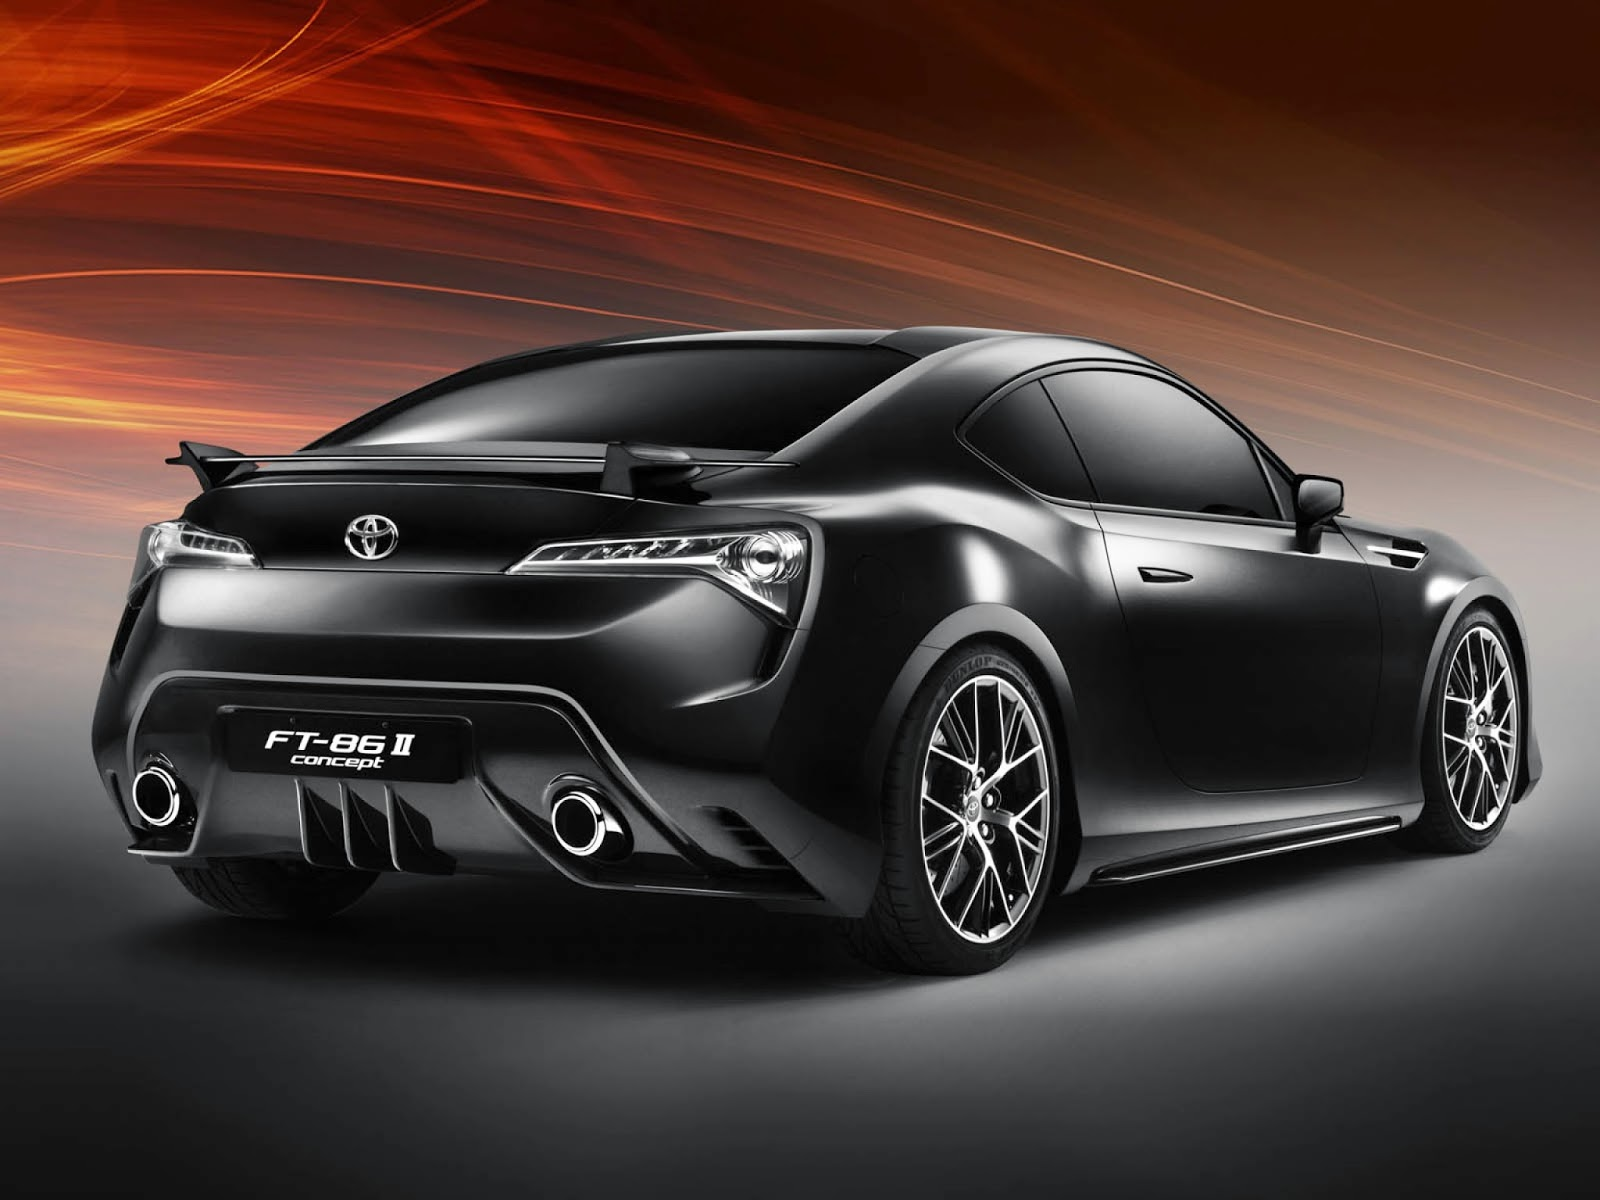 Toyota Ft86 Sport Cars HD Wallpapers